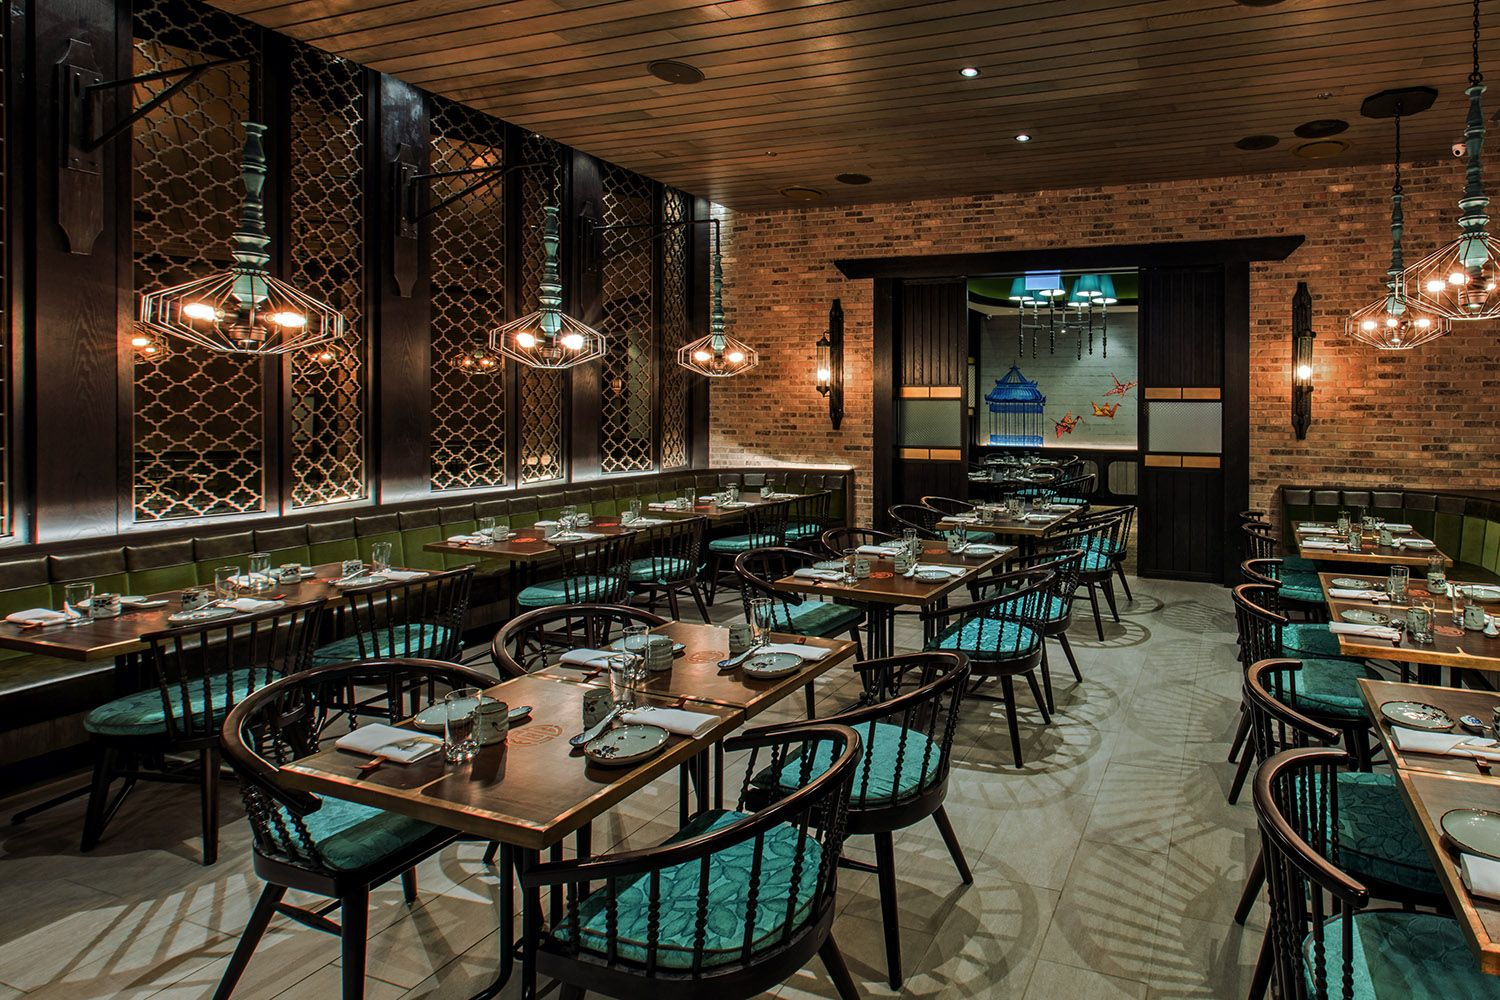 Imperial Lamian Chicago At S River North Usa In The United States Decoration Of Chinese Restaurants Is Thought To Be Somewhat Synonymous